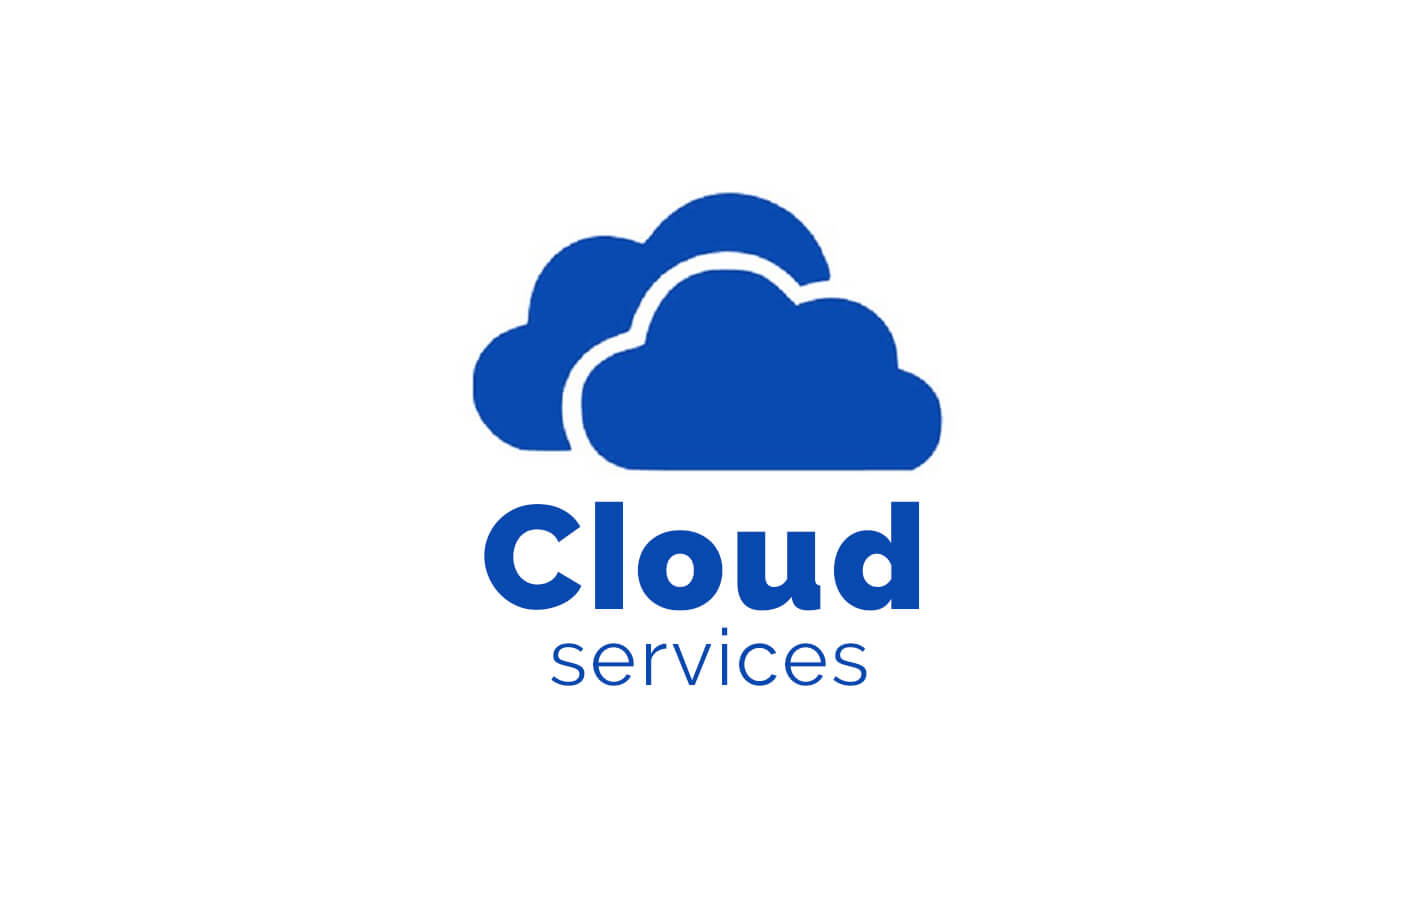 AngularJS Cloud Services